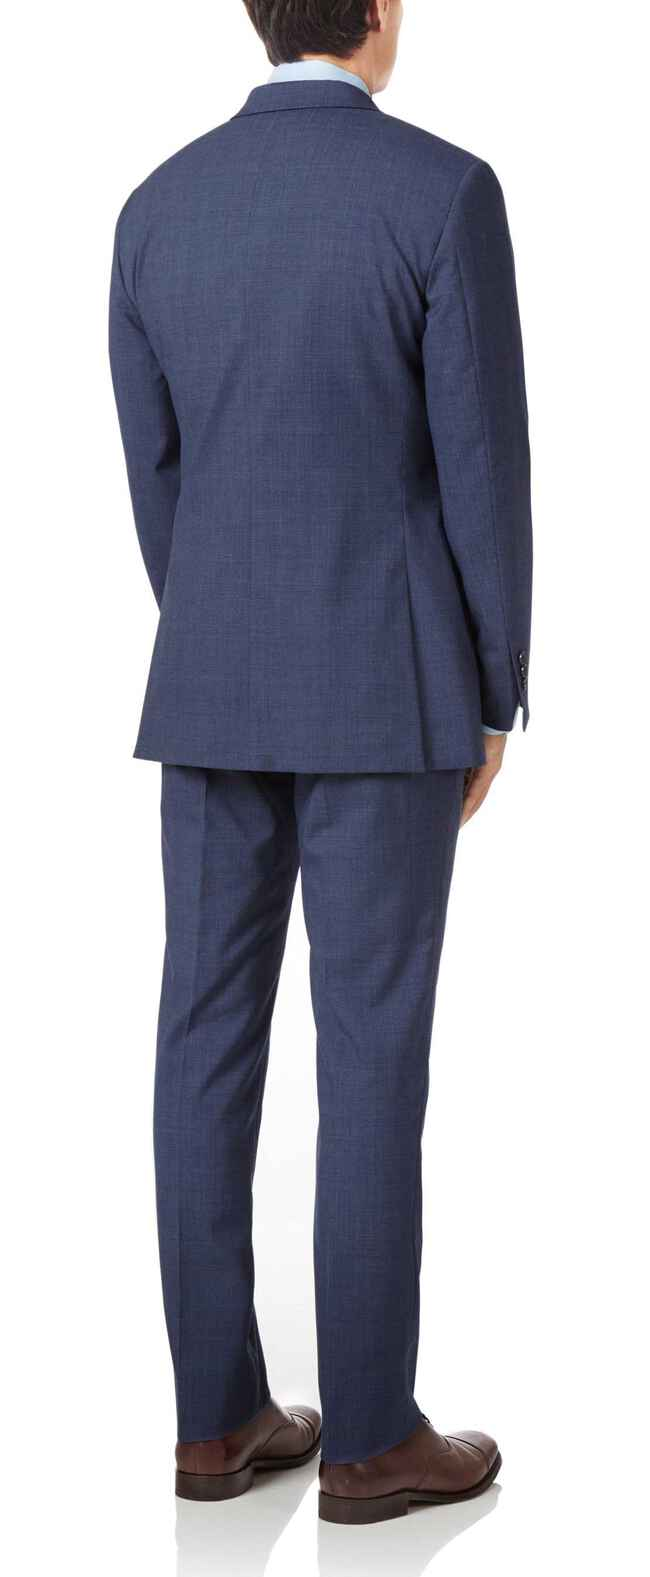 Airforce blue slim fit Panama check business suit